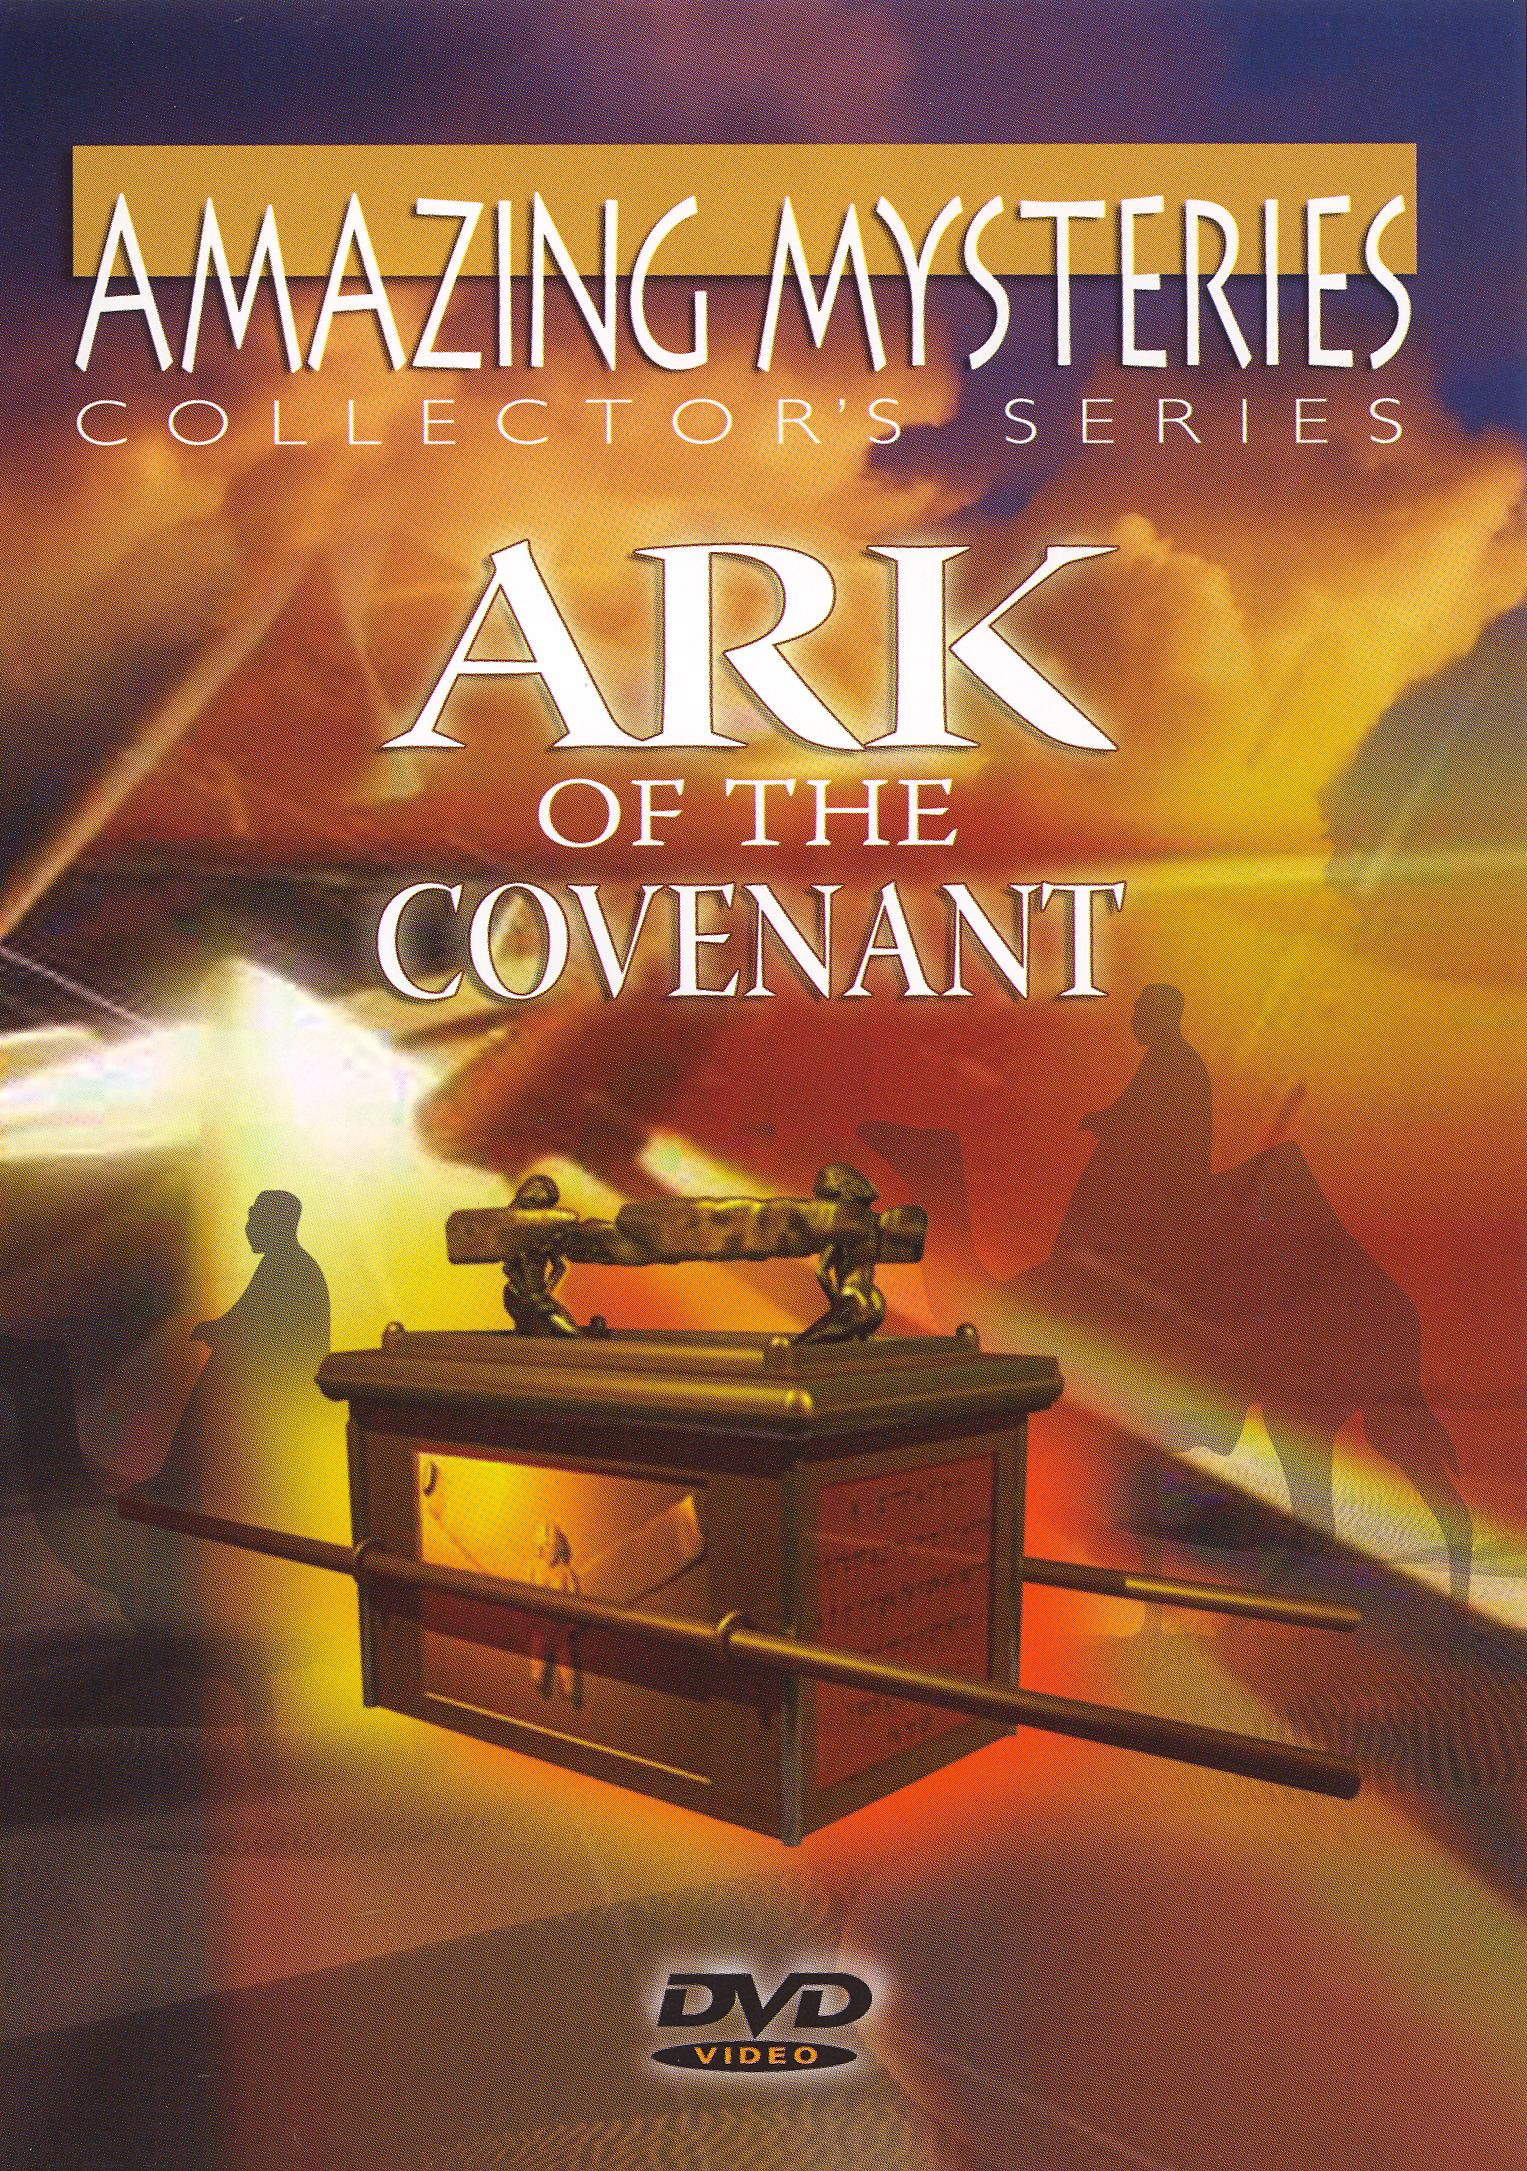 Ancient Mysteries: Ark of the Covenant